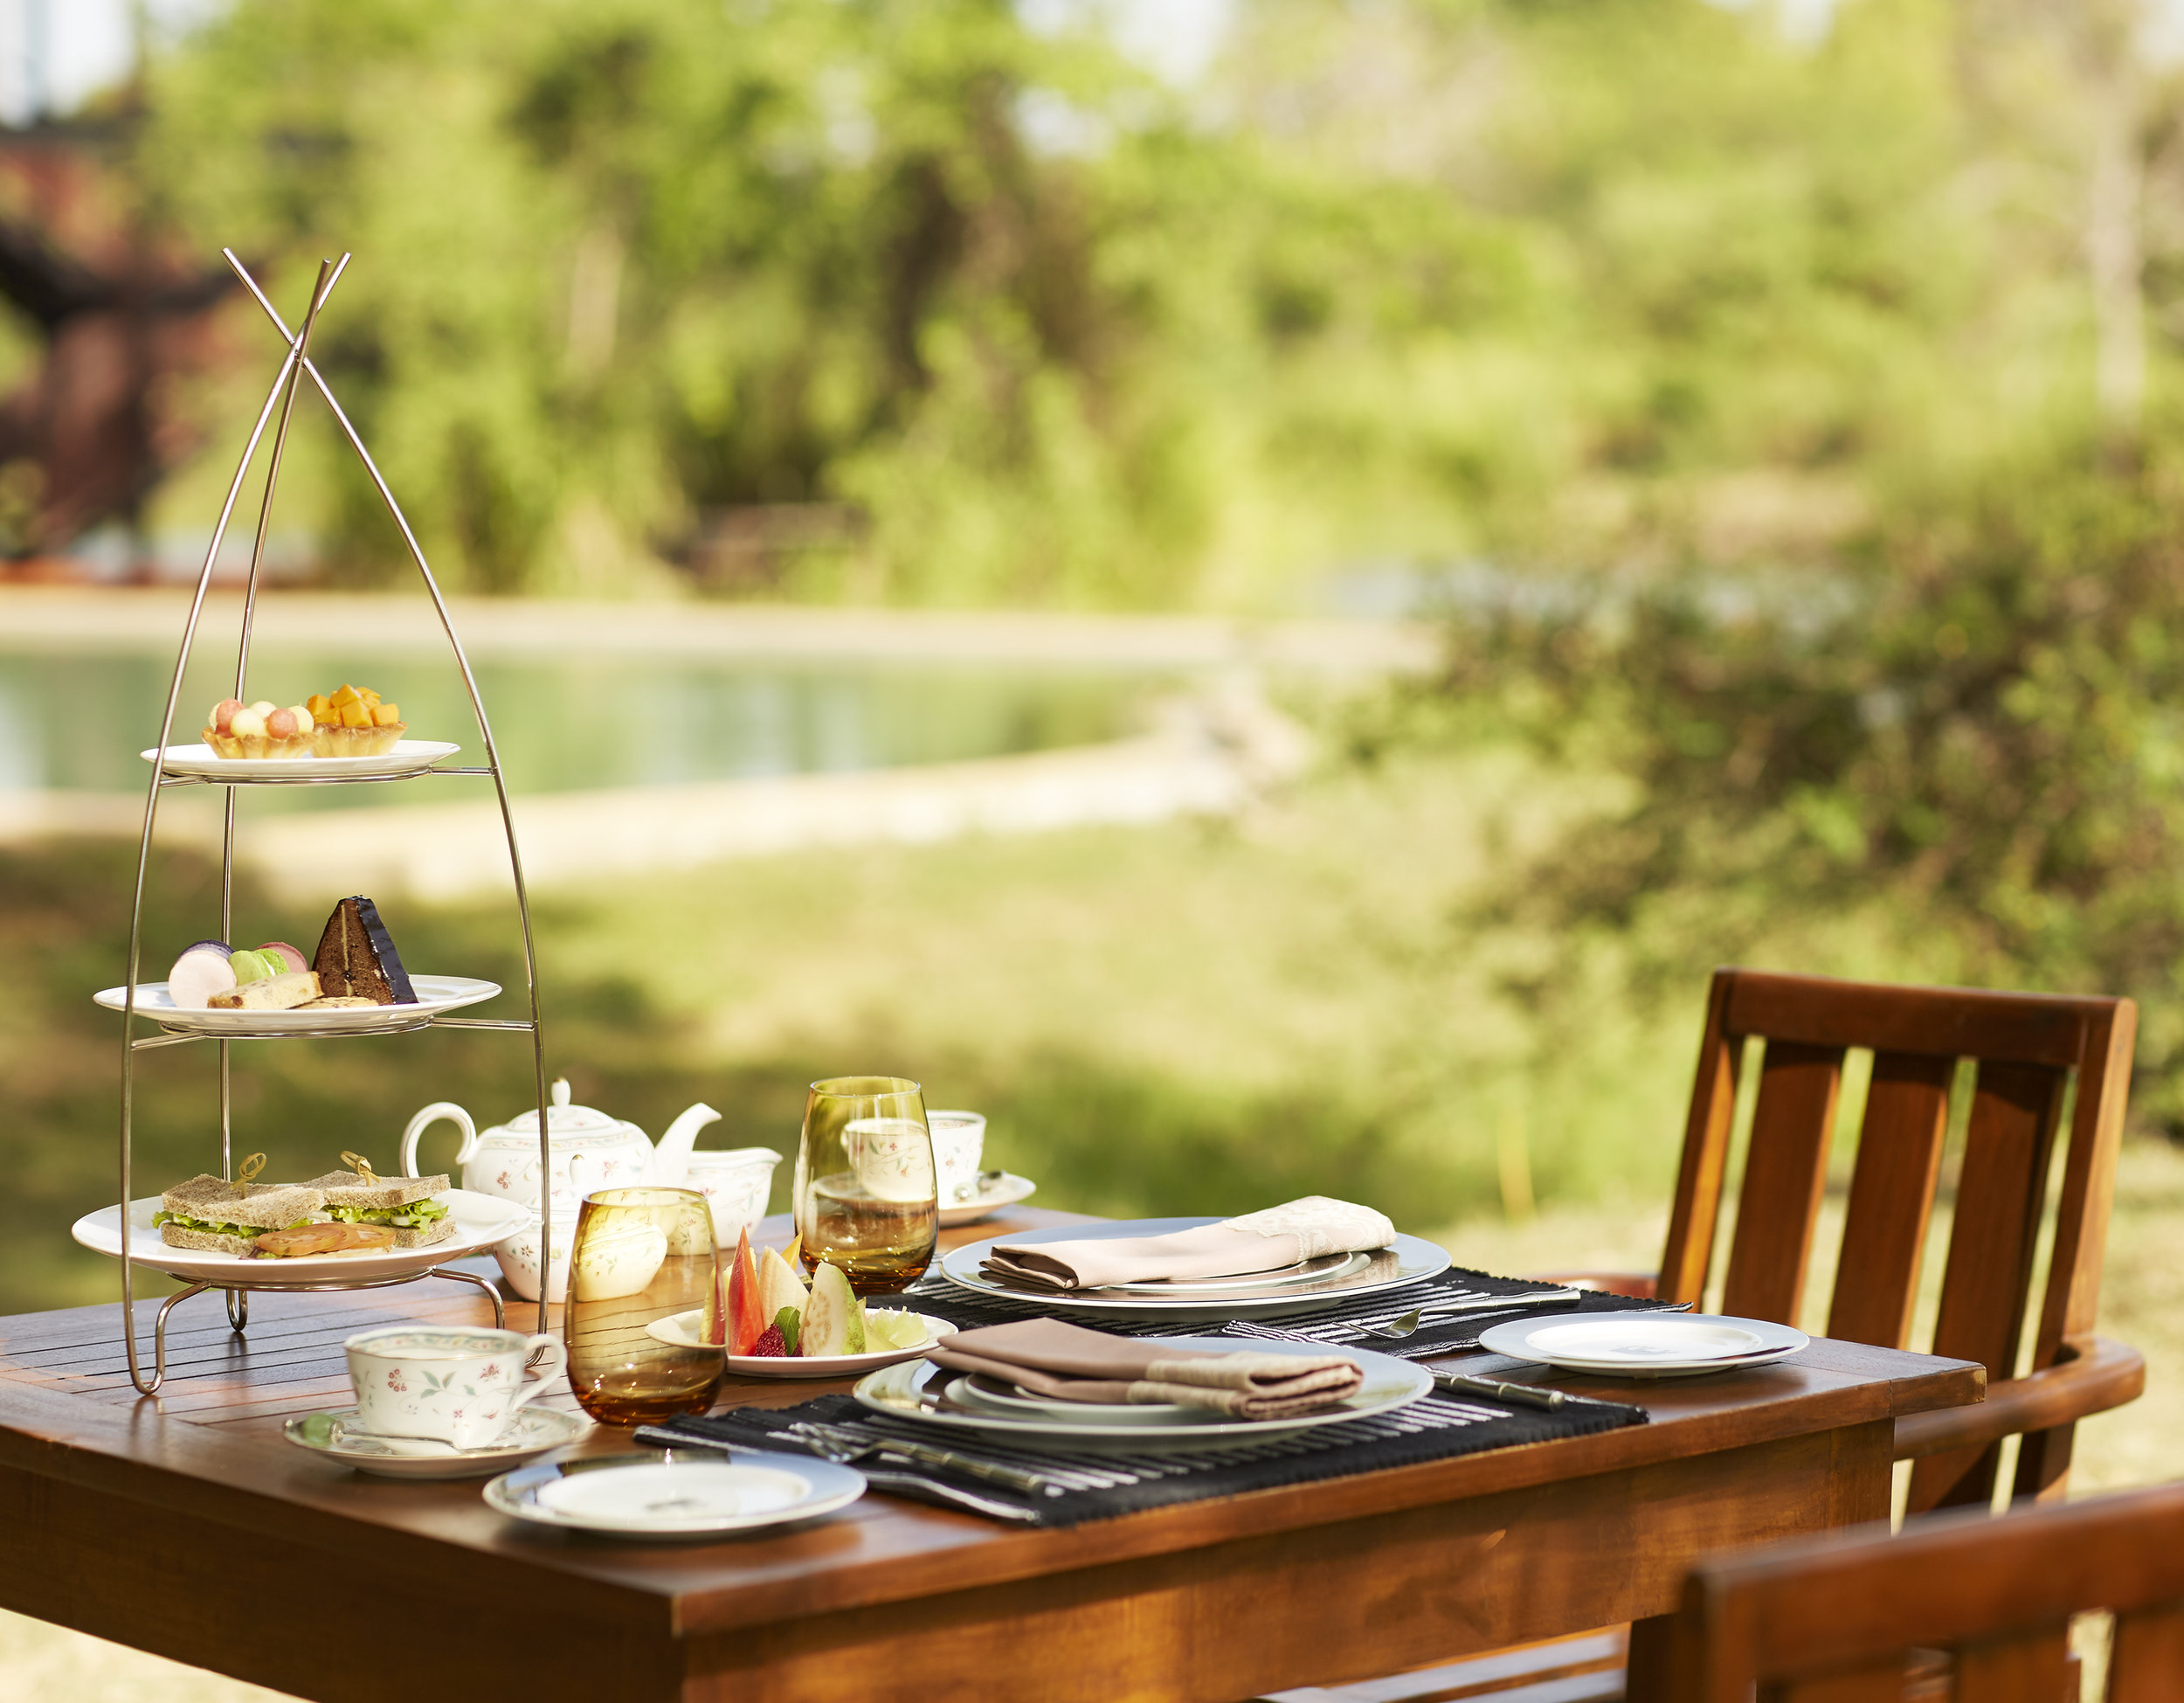 invite-to-paradise-sri-lanka-specialists-experts-travel-agent-tour-operator-jetwing-viluyana-hotel-cultural-triangle-hightea.jpg